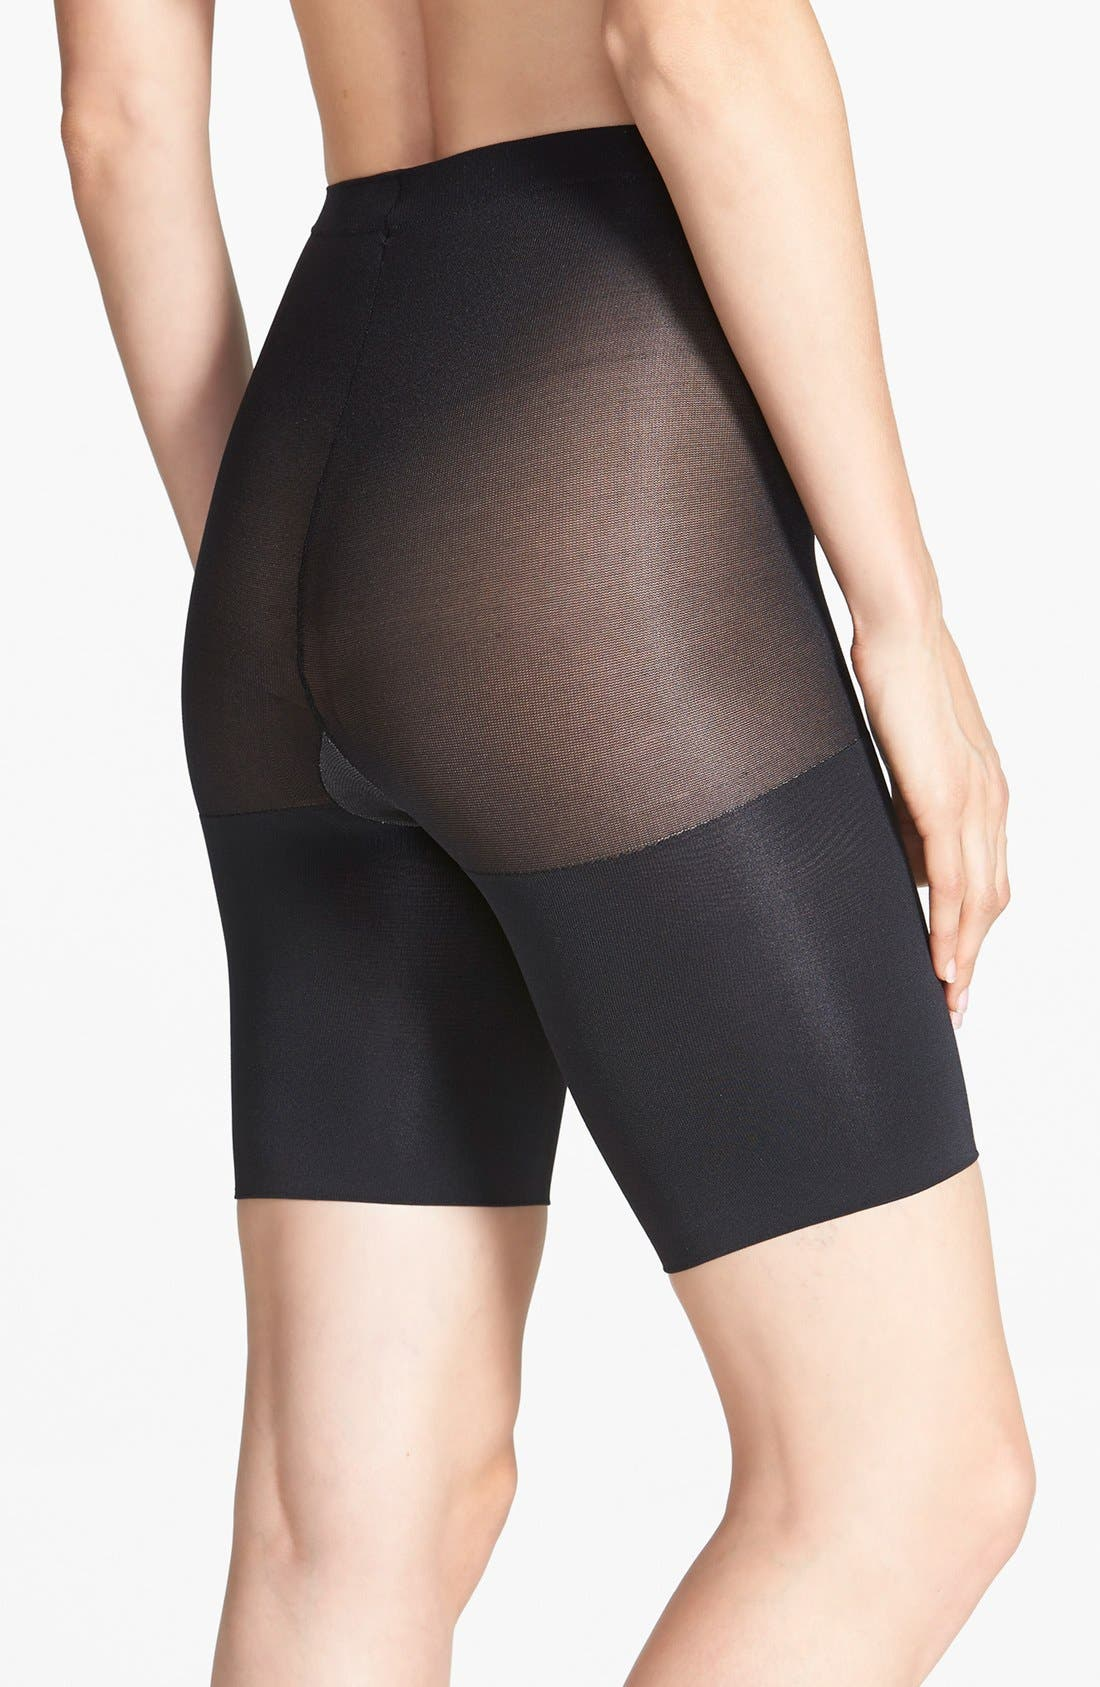 Alternate Image 2  - SPANX® 'In-Power Line' Super Power Panties Mid Thigh Shaper (Regular & Plus Size)